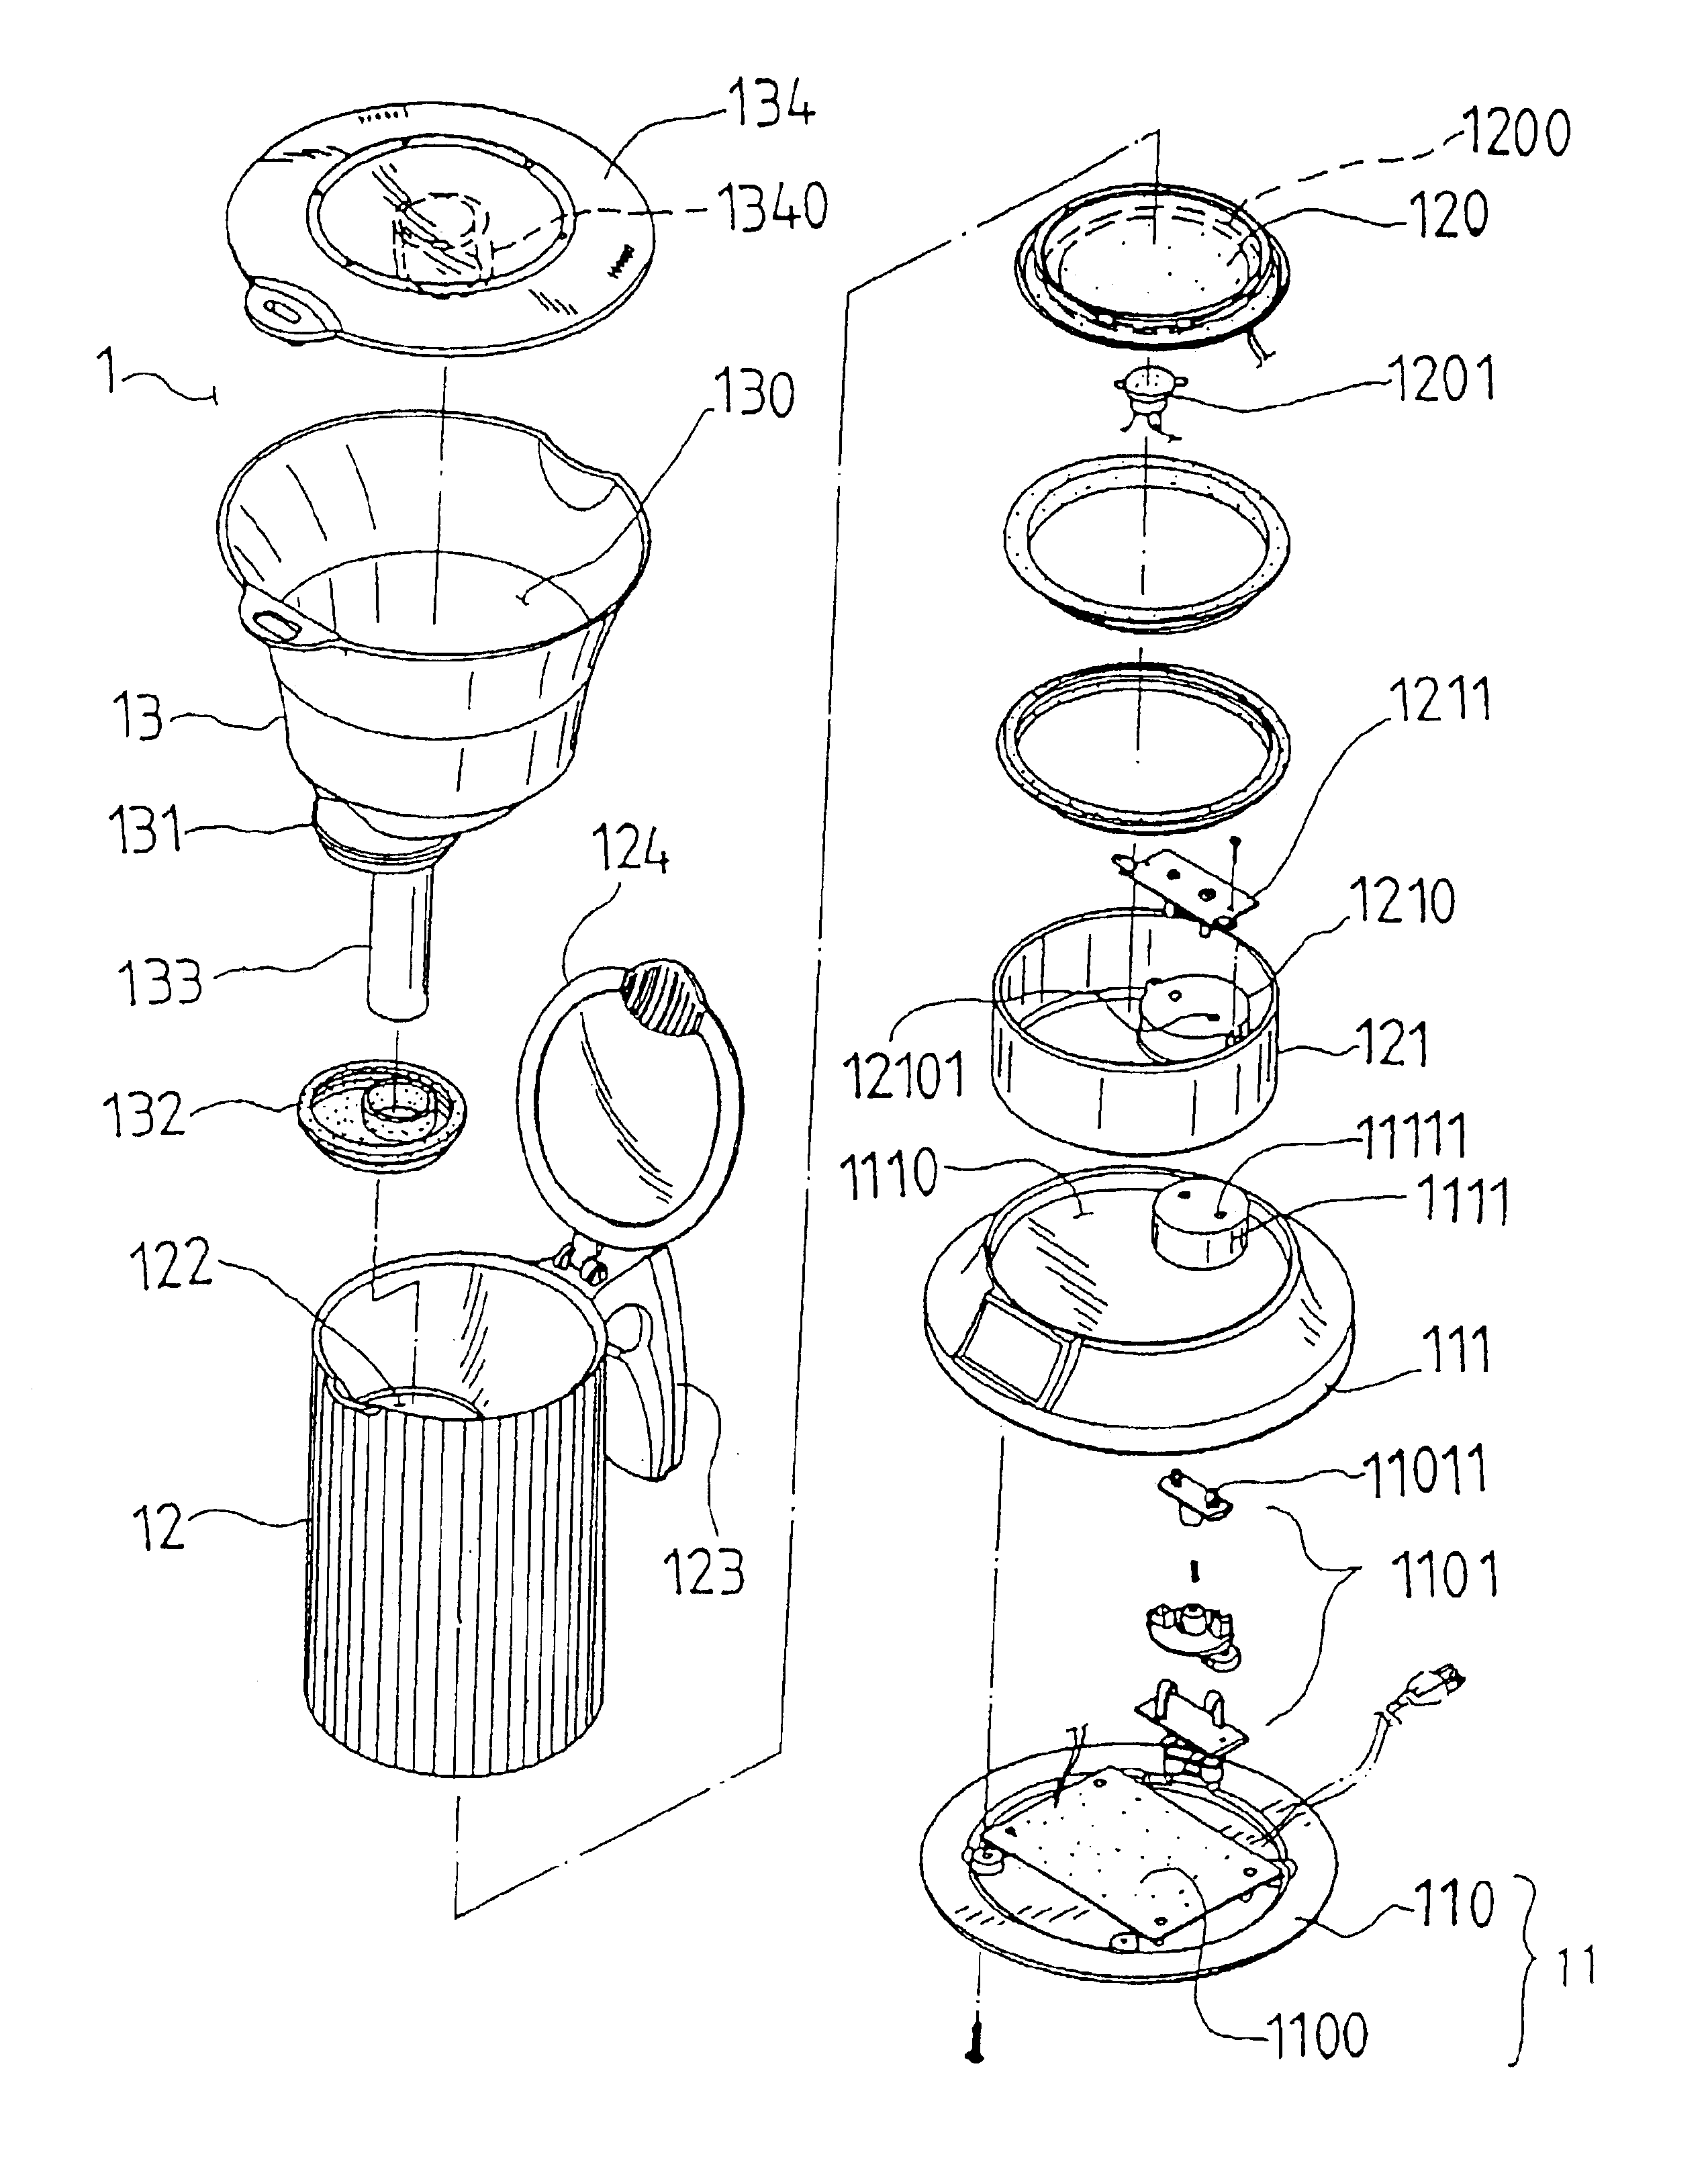 patent us6742442 - coffee maker structure